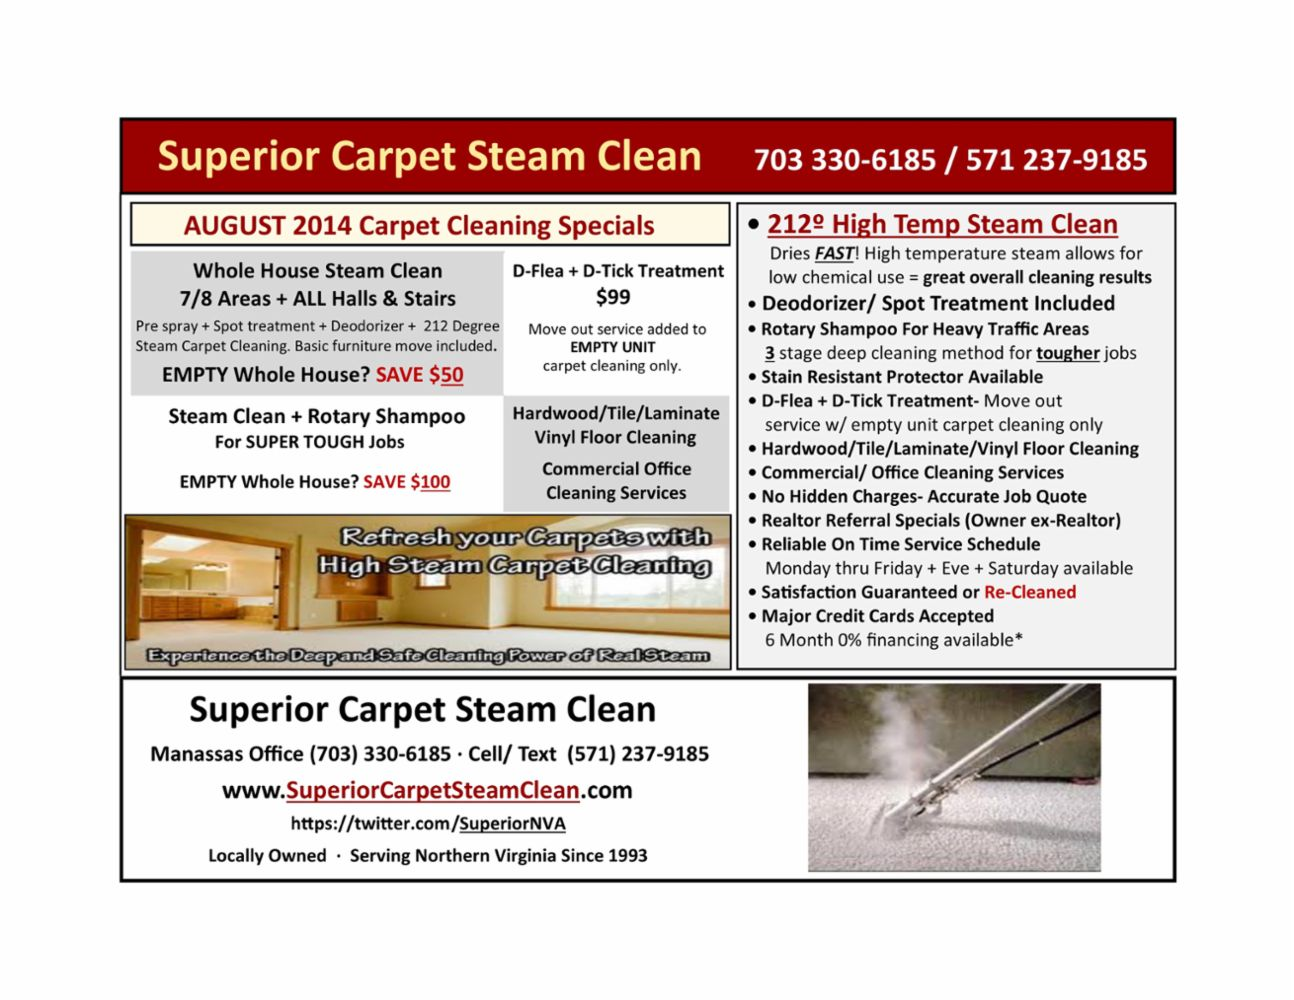 August 2014 flyer with special offers